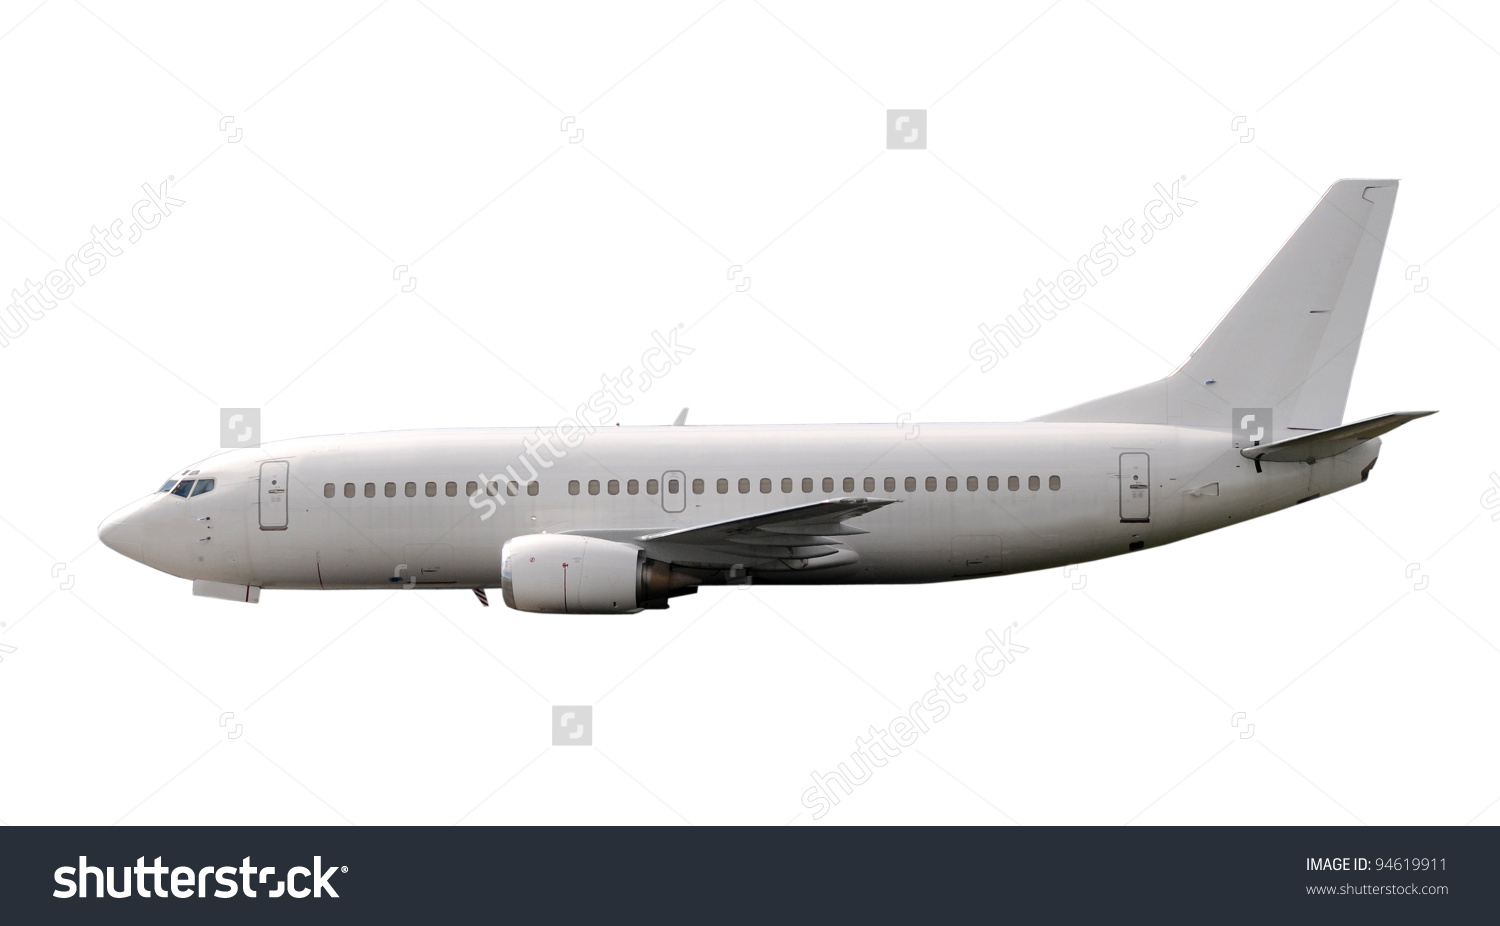 Airplane clipart side view Airplane clipart view side view